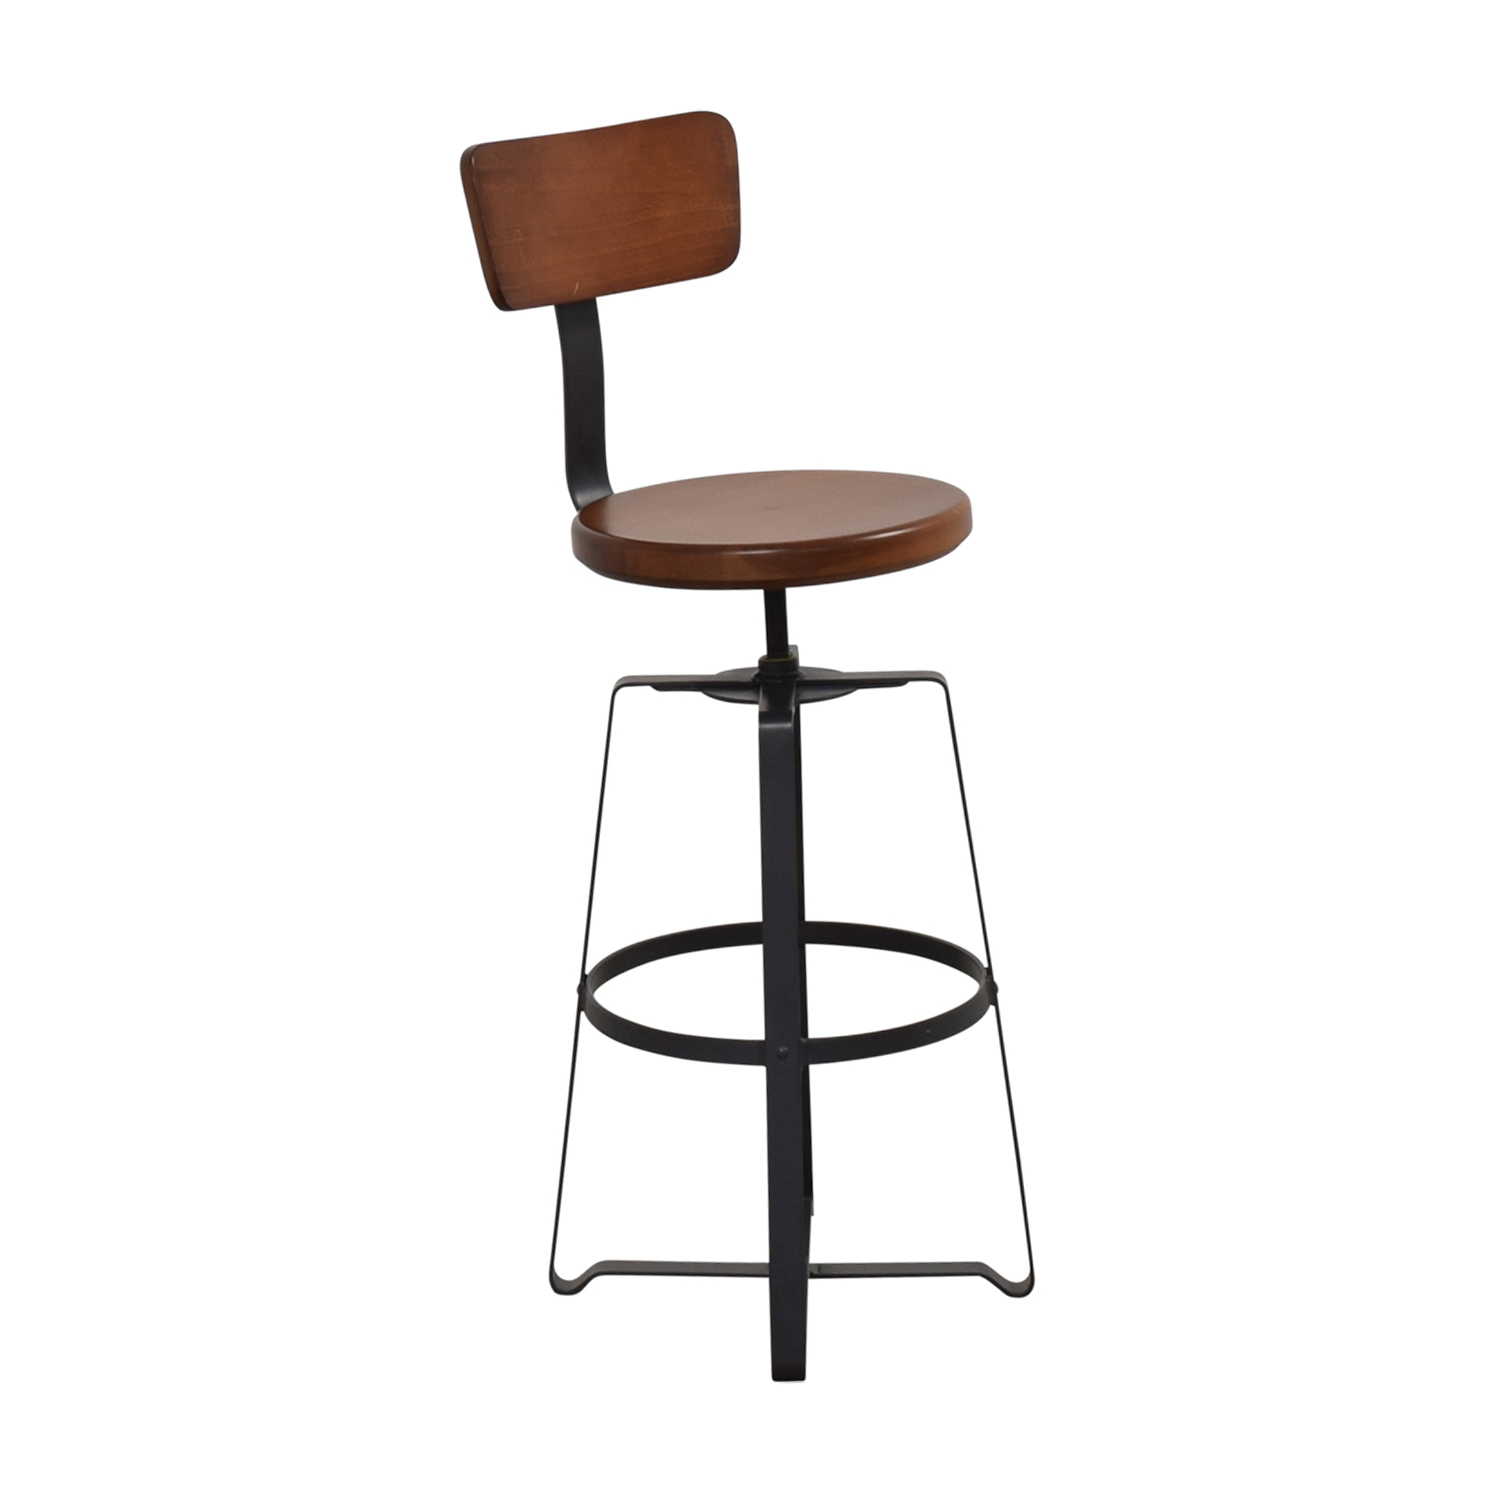 West Elm West Elm Adjustable Industrial Swivel Stool used